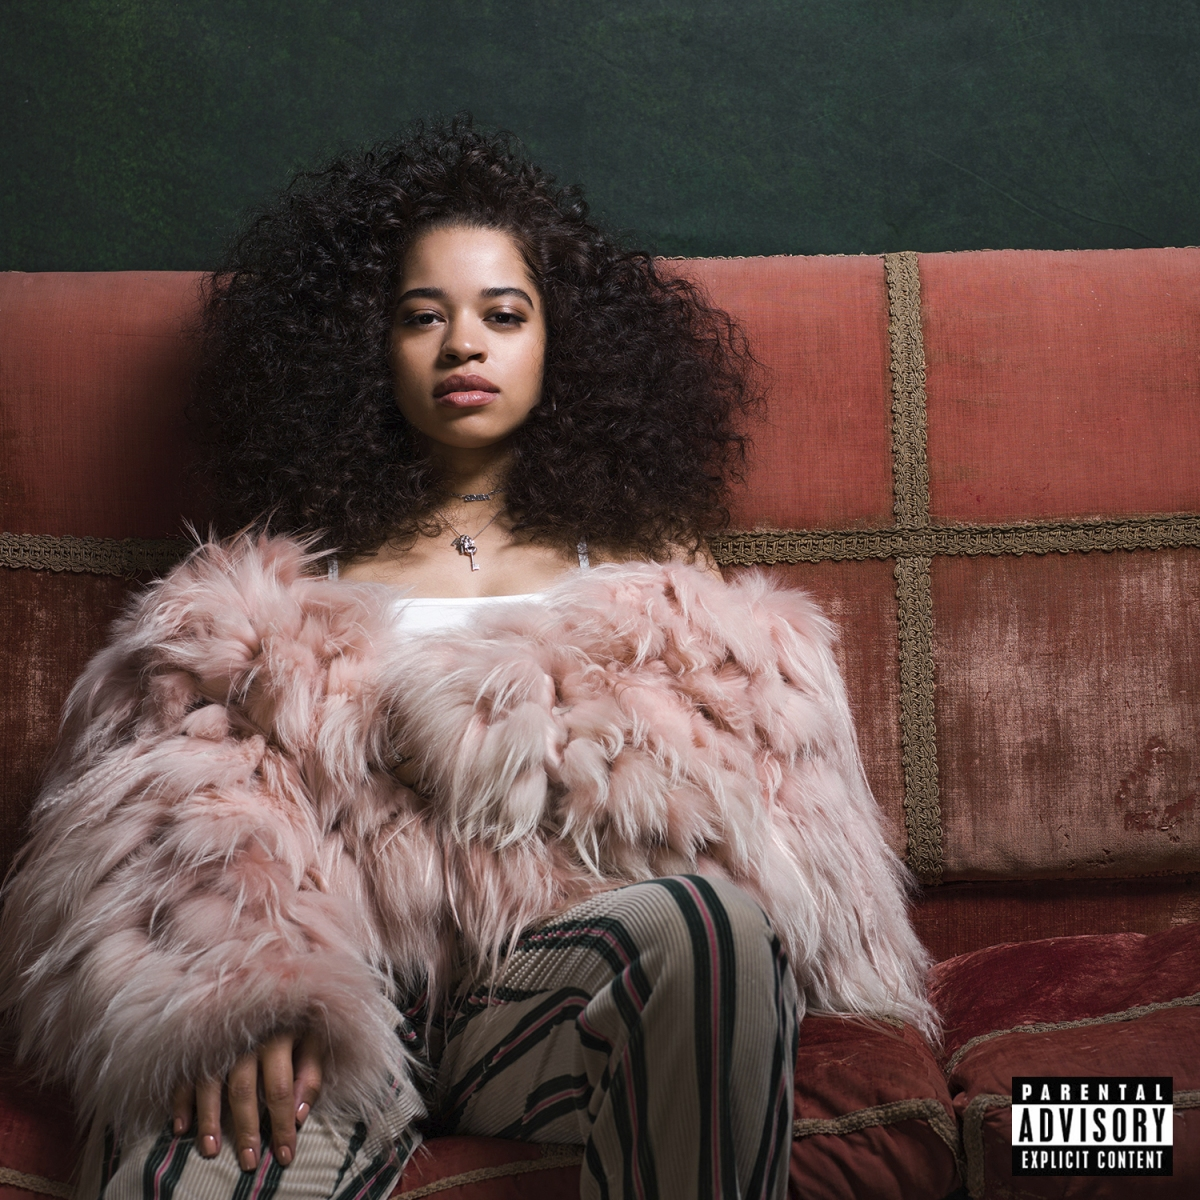 ELLA MAI'S SELF-TITLED DEBUT ALBUM IS OUT NOW